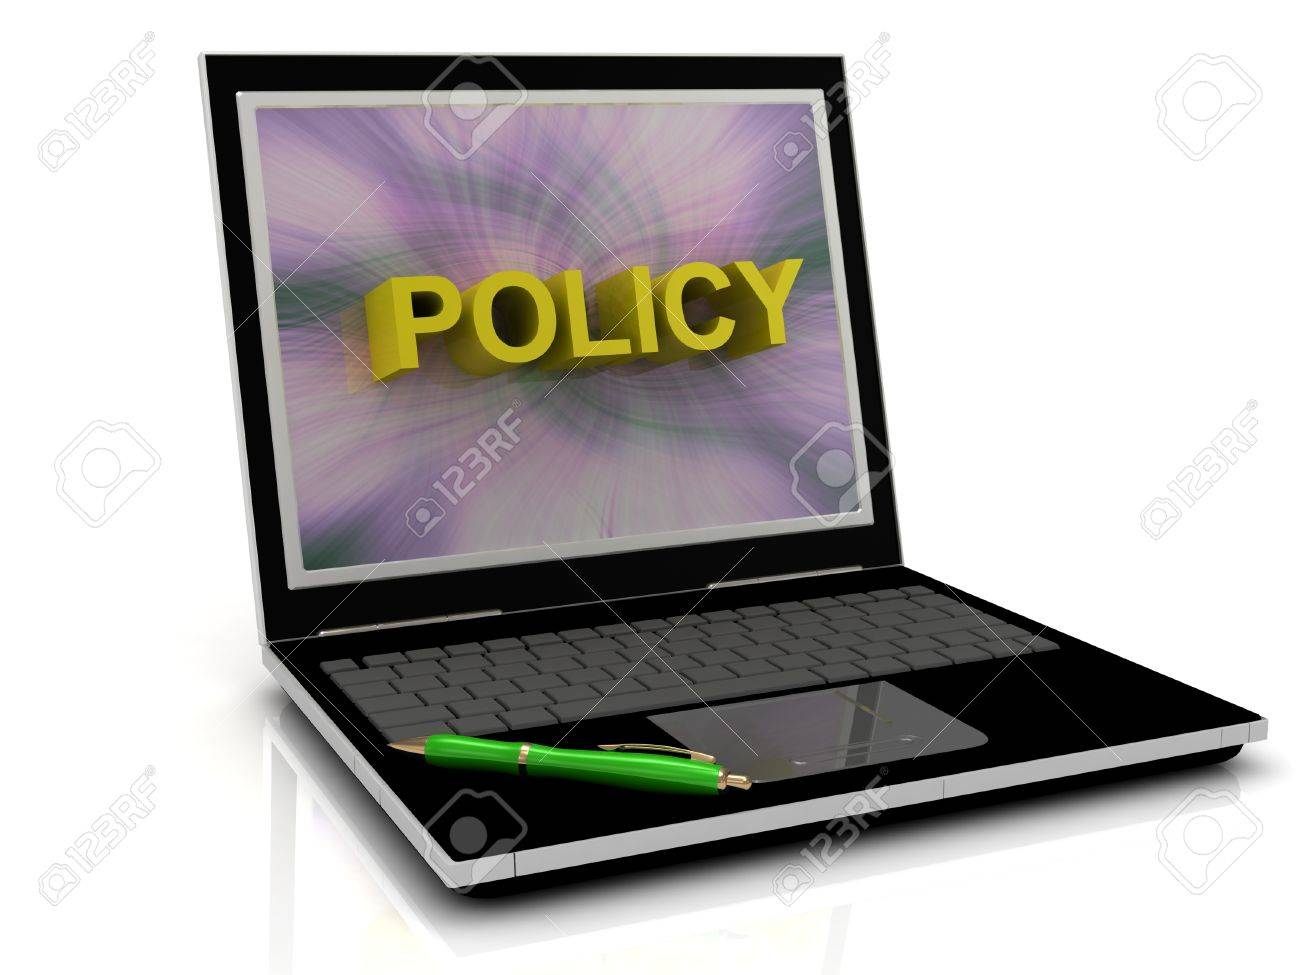 POLICY message on laptop screen in big letters. 3D illustration isolated on white background Stock Photo - 14689991